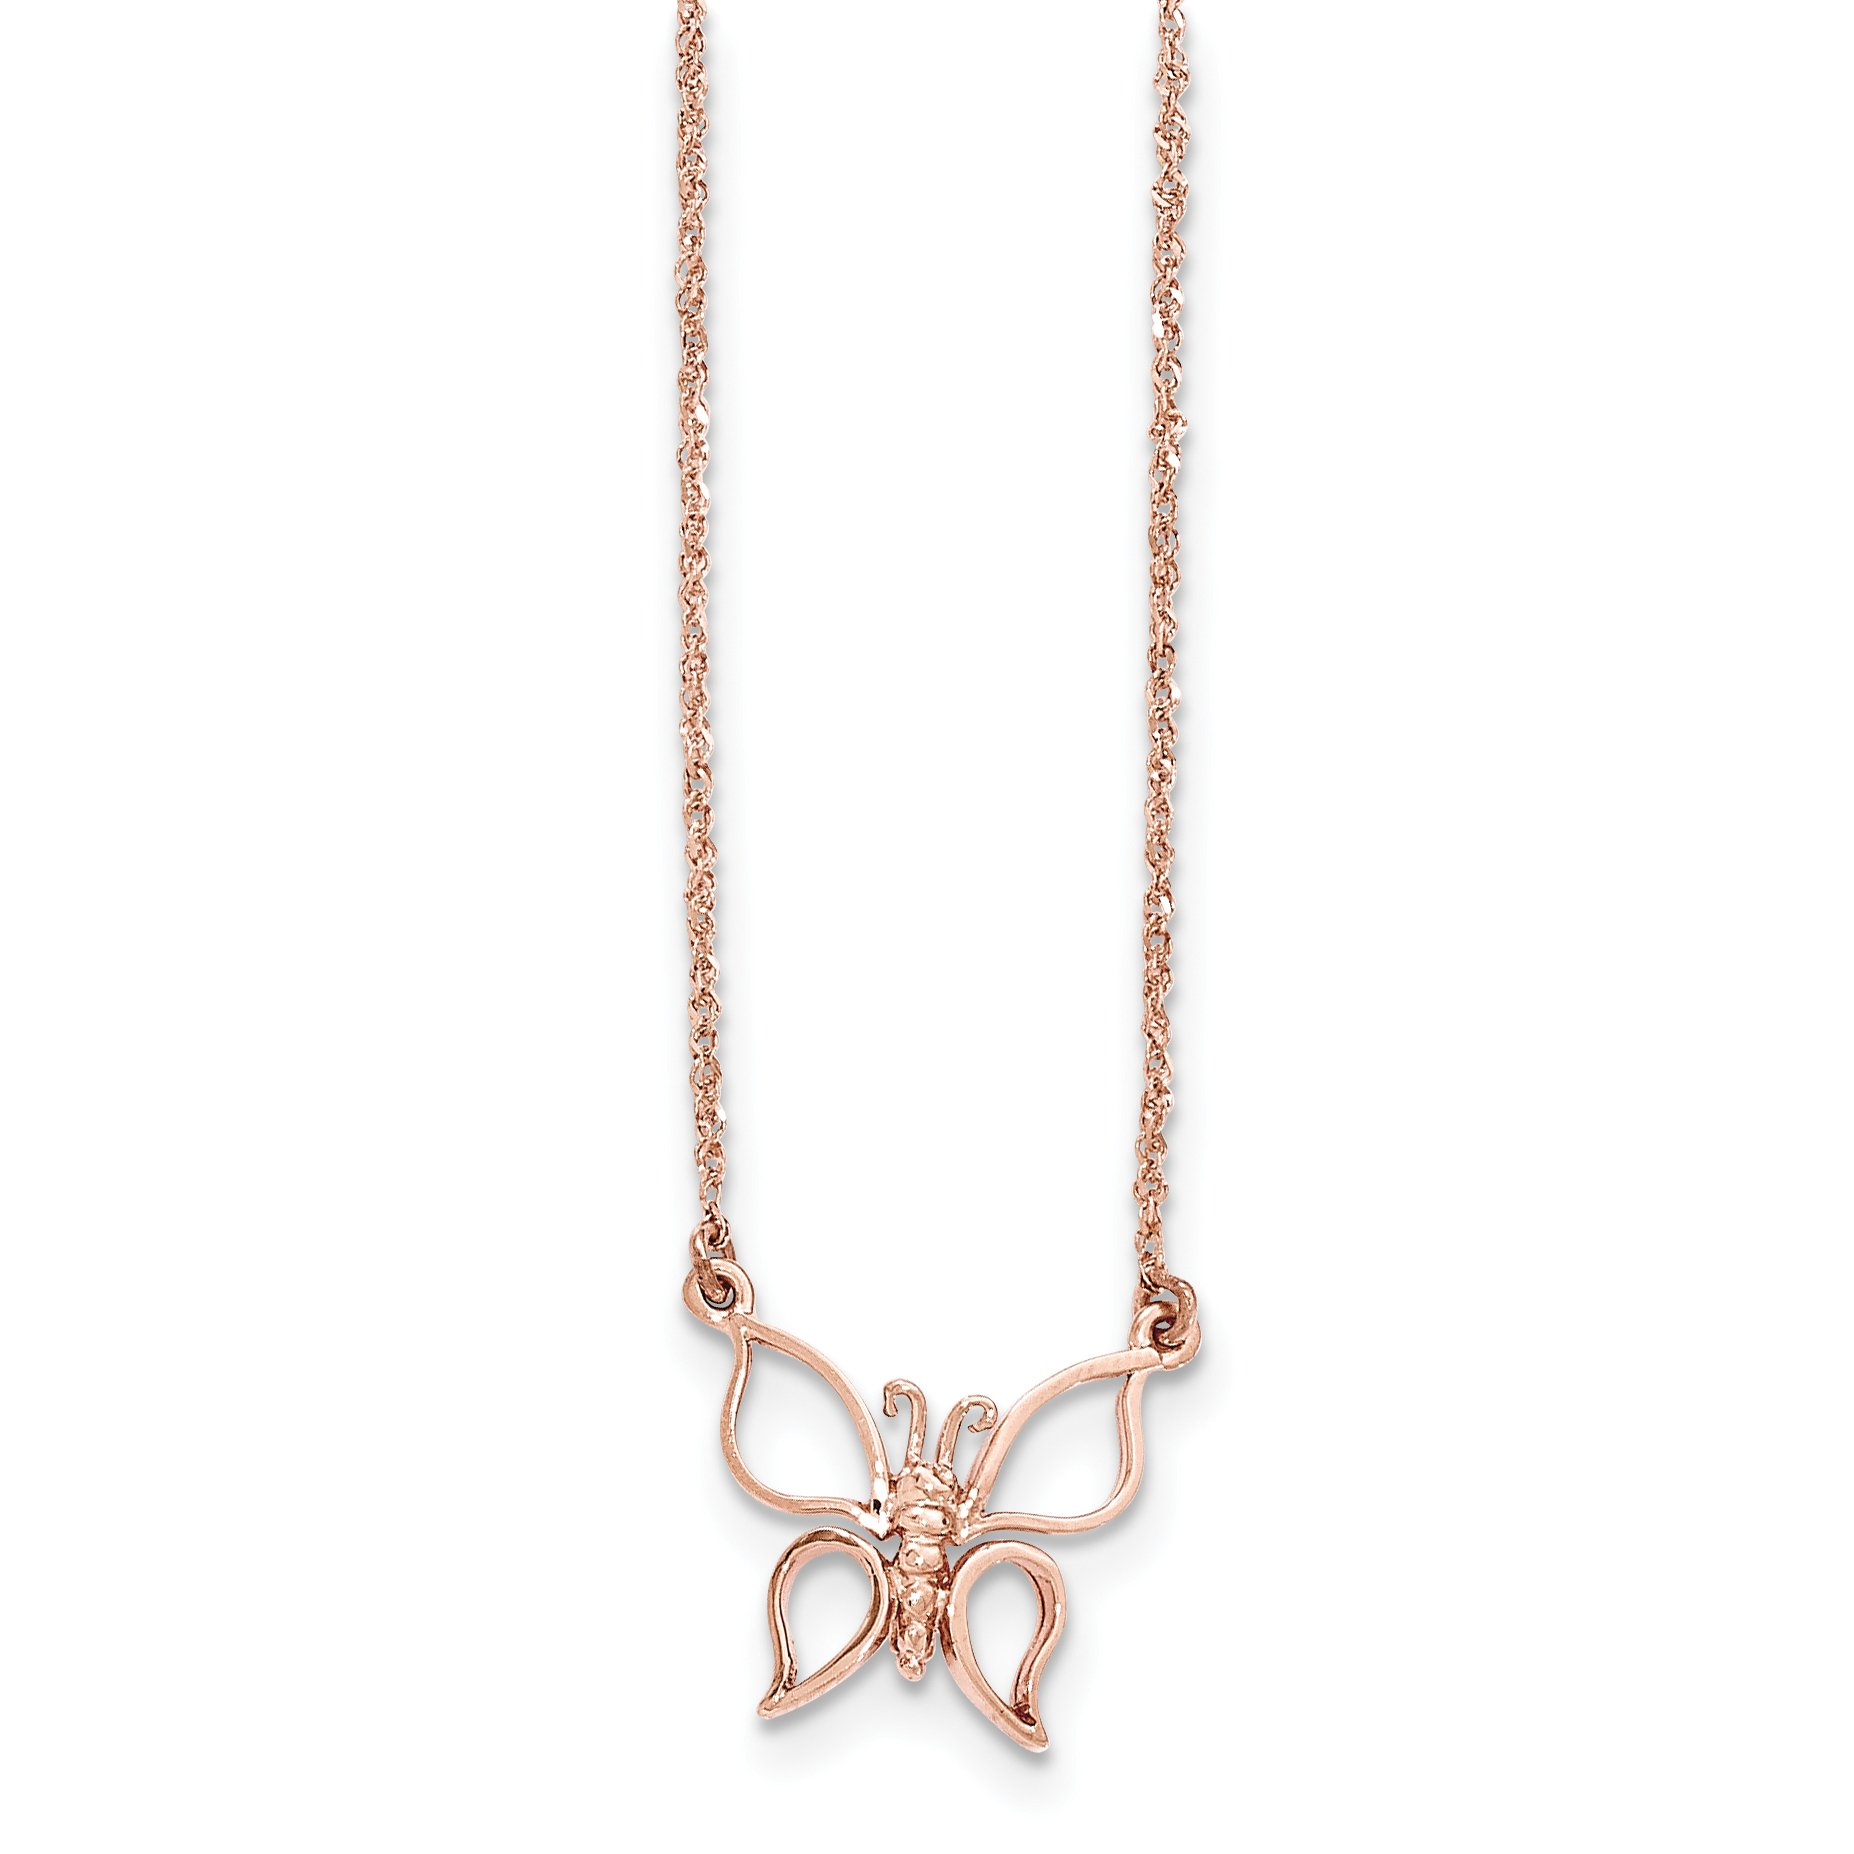 ICE CARATS 14k Rose Gold Butterfly Chain Necklace Animals/insect Fine Jewelry Gift Set For Women Heart